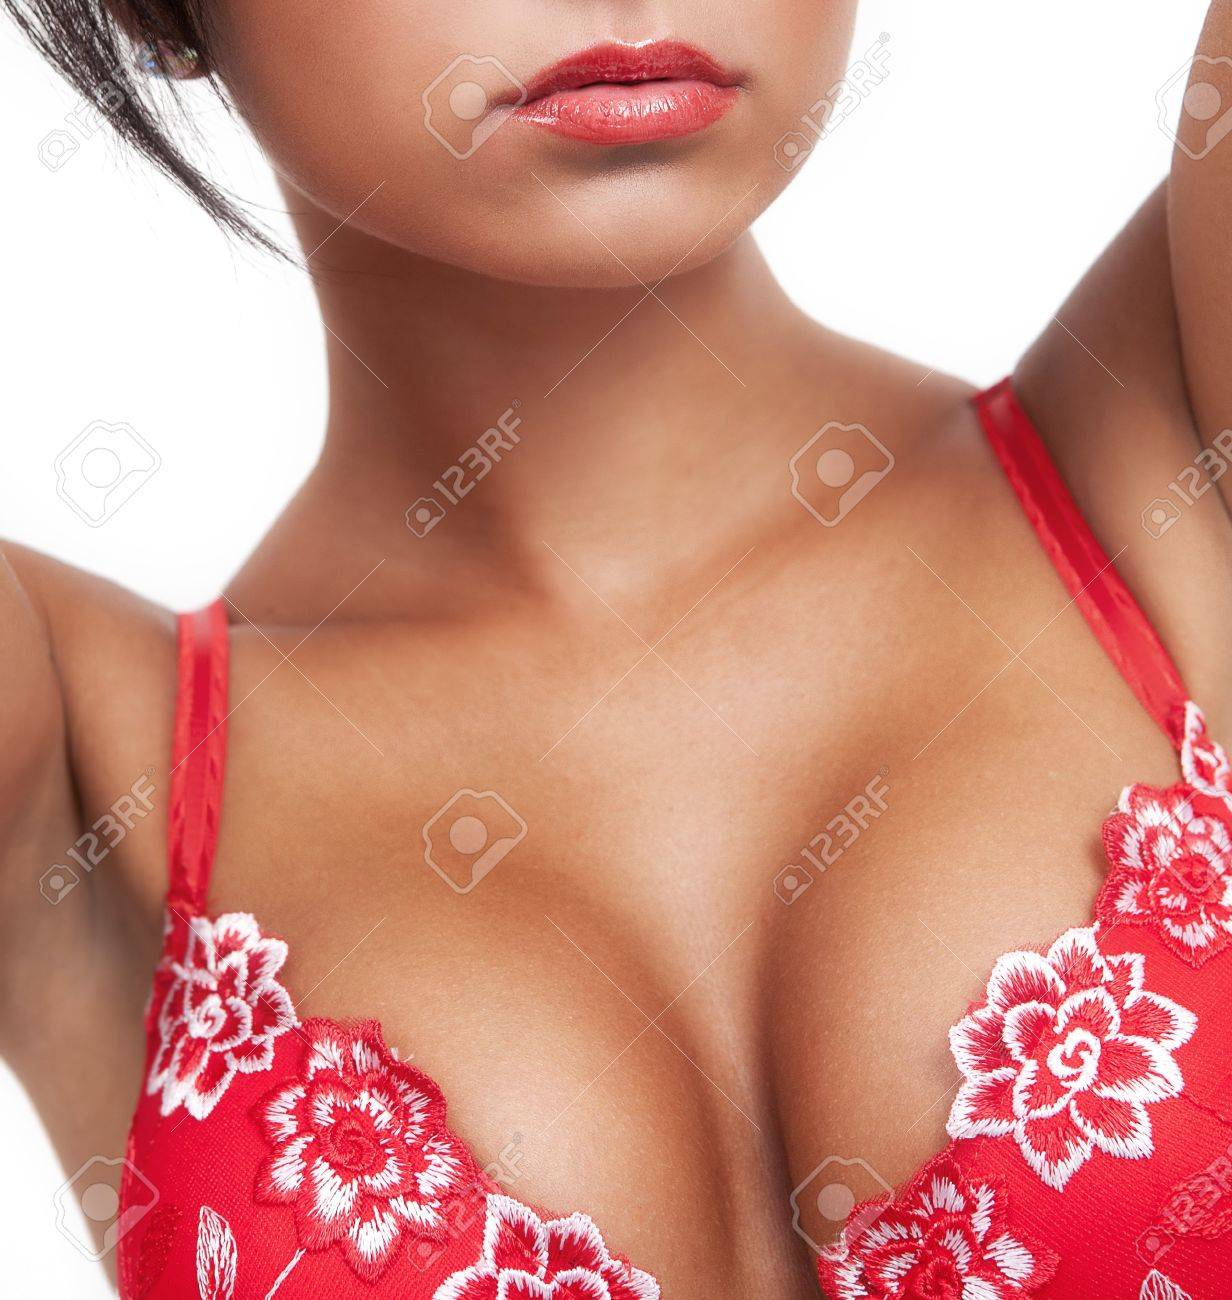 Woman with hot sexy breasts in red lingerie Stock Photo - 12619588